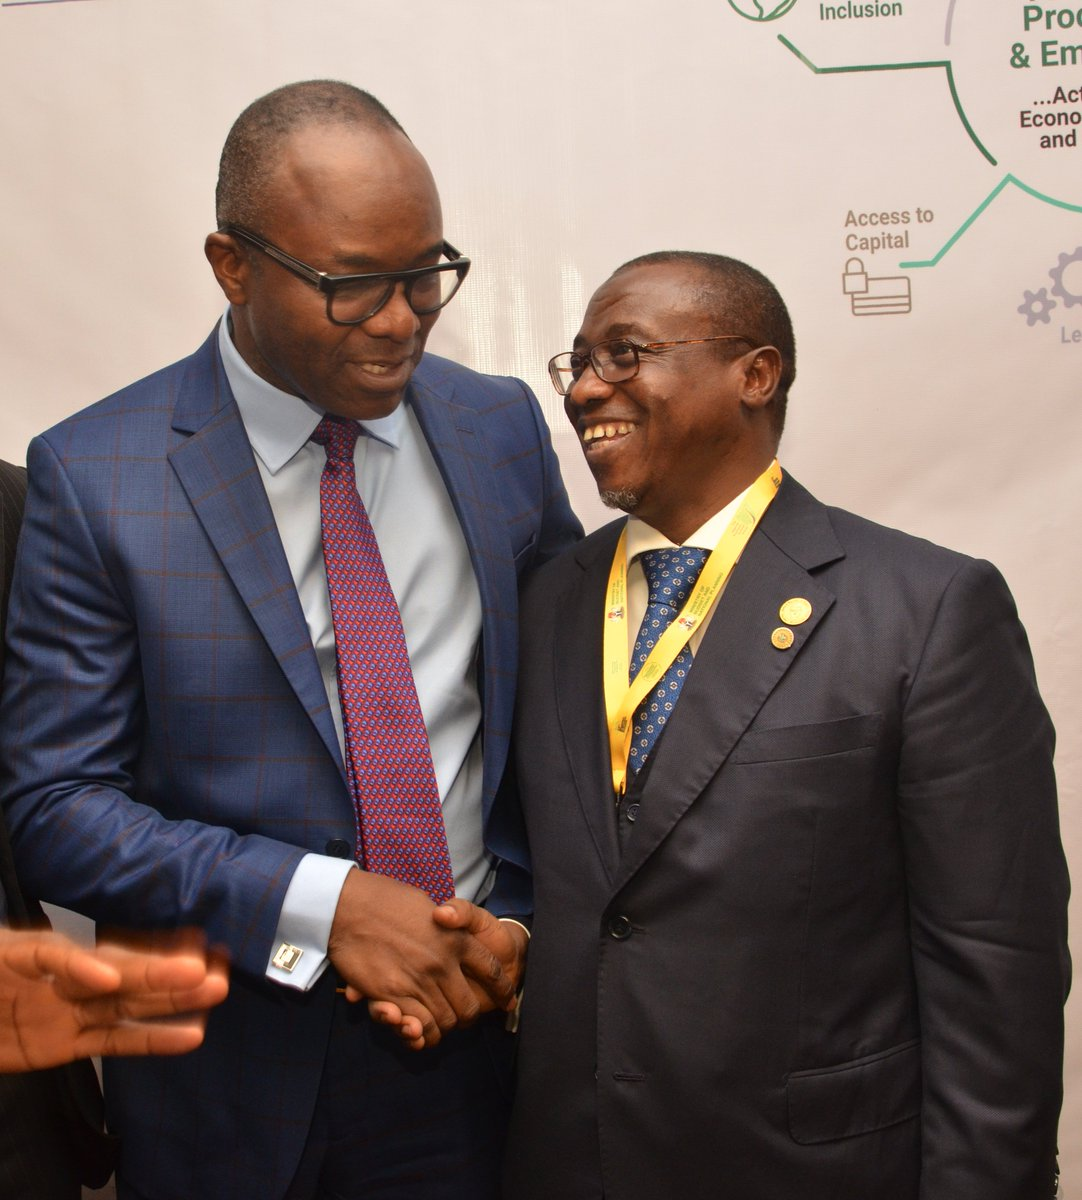 Petroleum Minister Ibe Kachikwu & NNPC GMD Maikanti Baru met on Tuesday & discussed opportunities to further develop the nation's oil/gas sector.